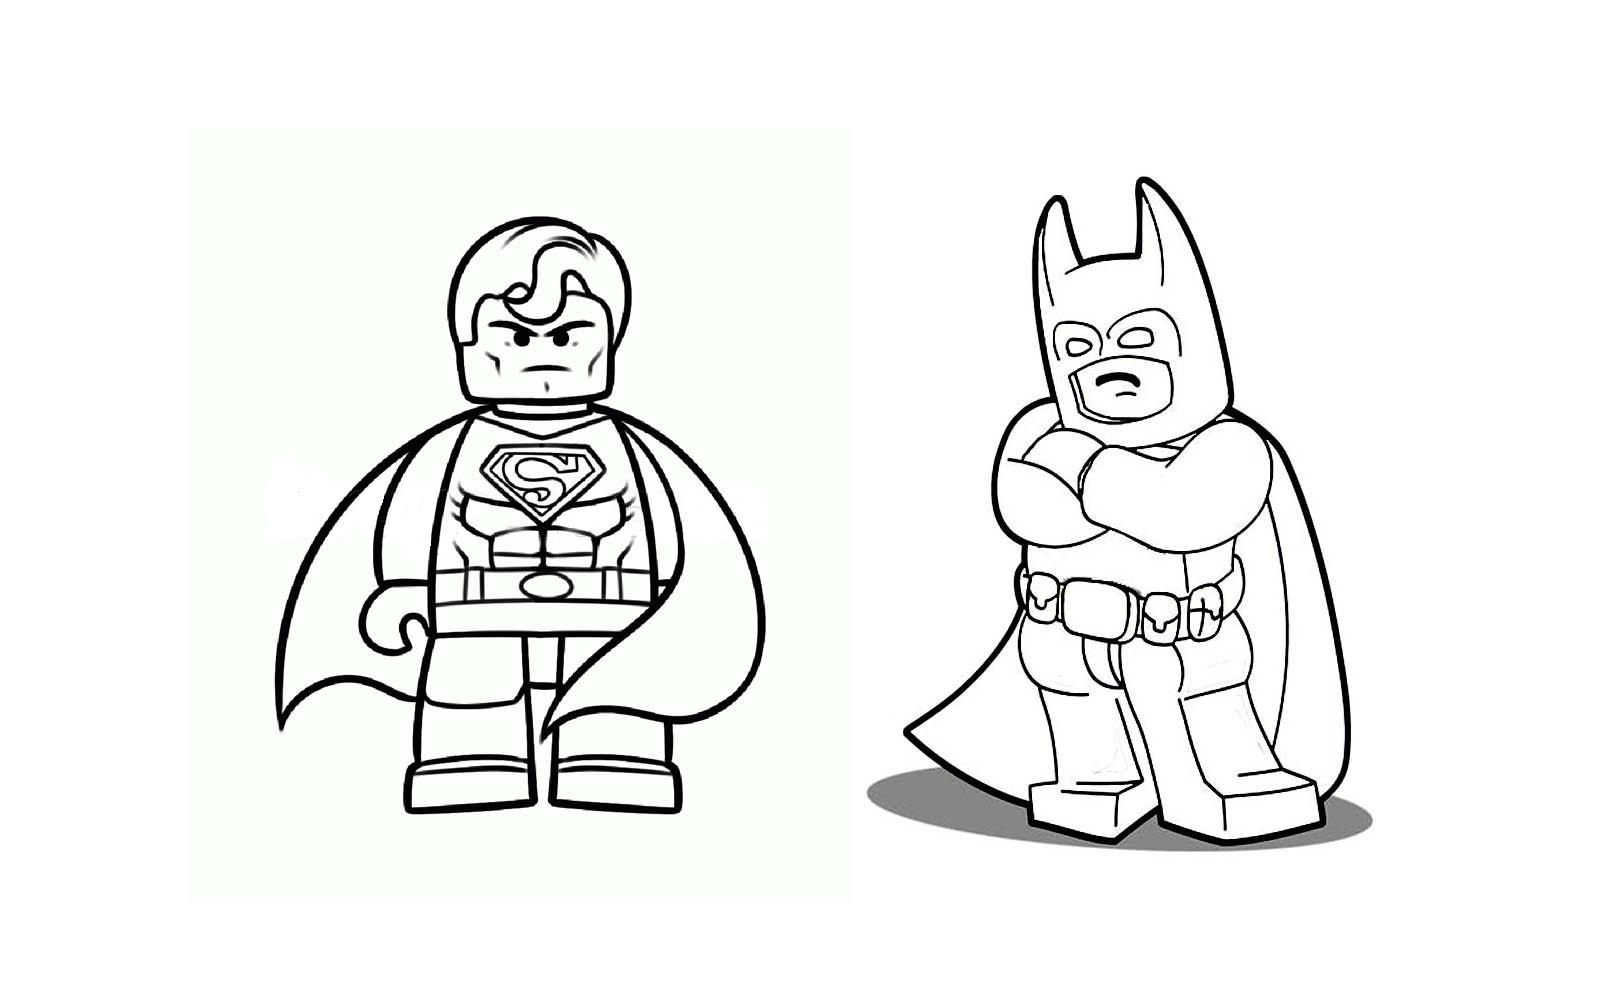 batman vs superman coloring pages 4batman vs superman coloring pages 4